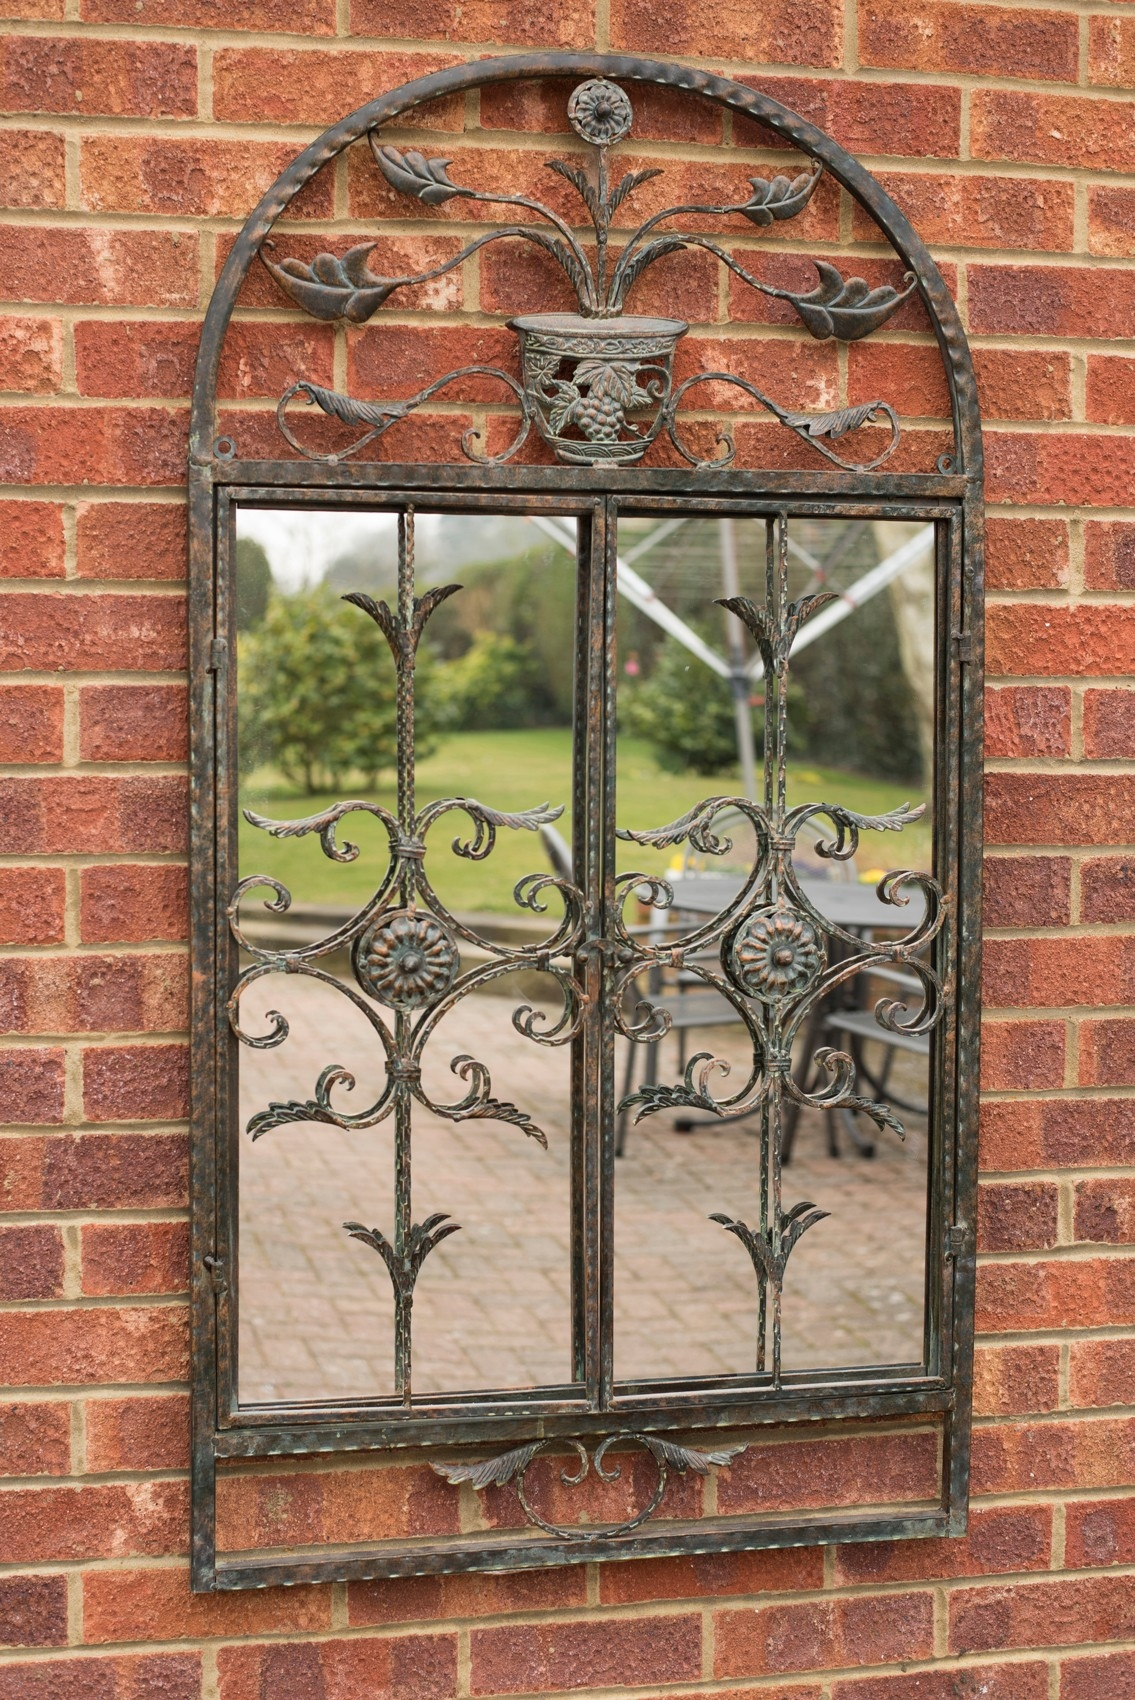 Large Rustic Scroll Garden Outdoor Wall Mirror 4ft3 X 2ft4 130cm Inside Large Outdoor Garden Mirrors (Image 8 of 15)